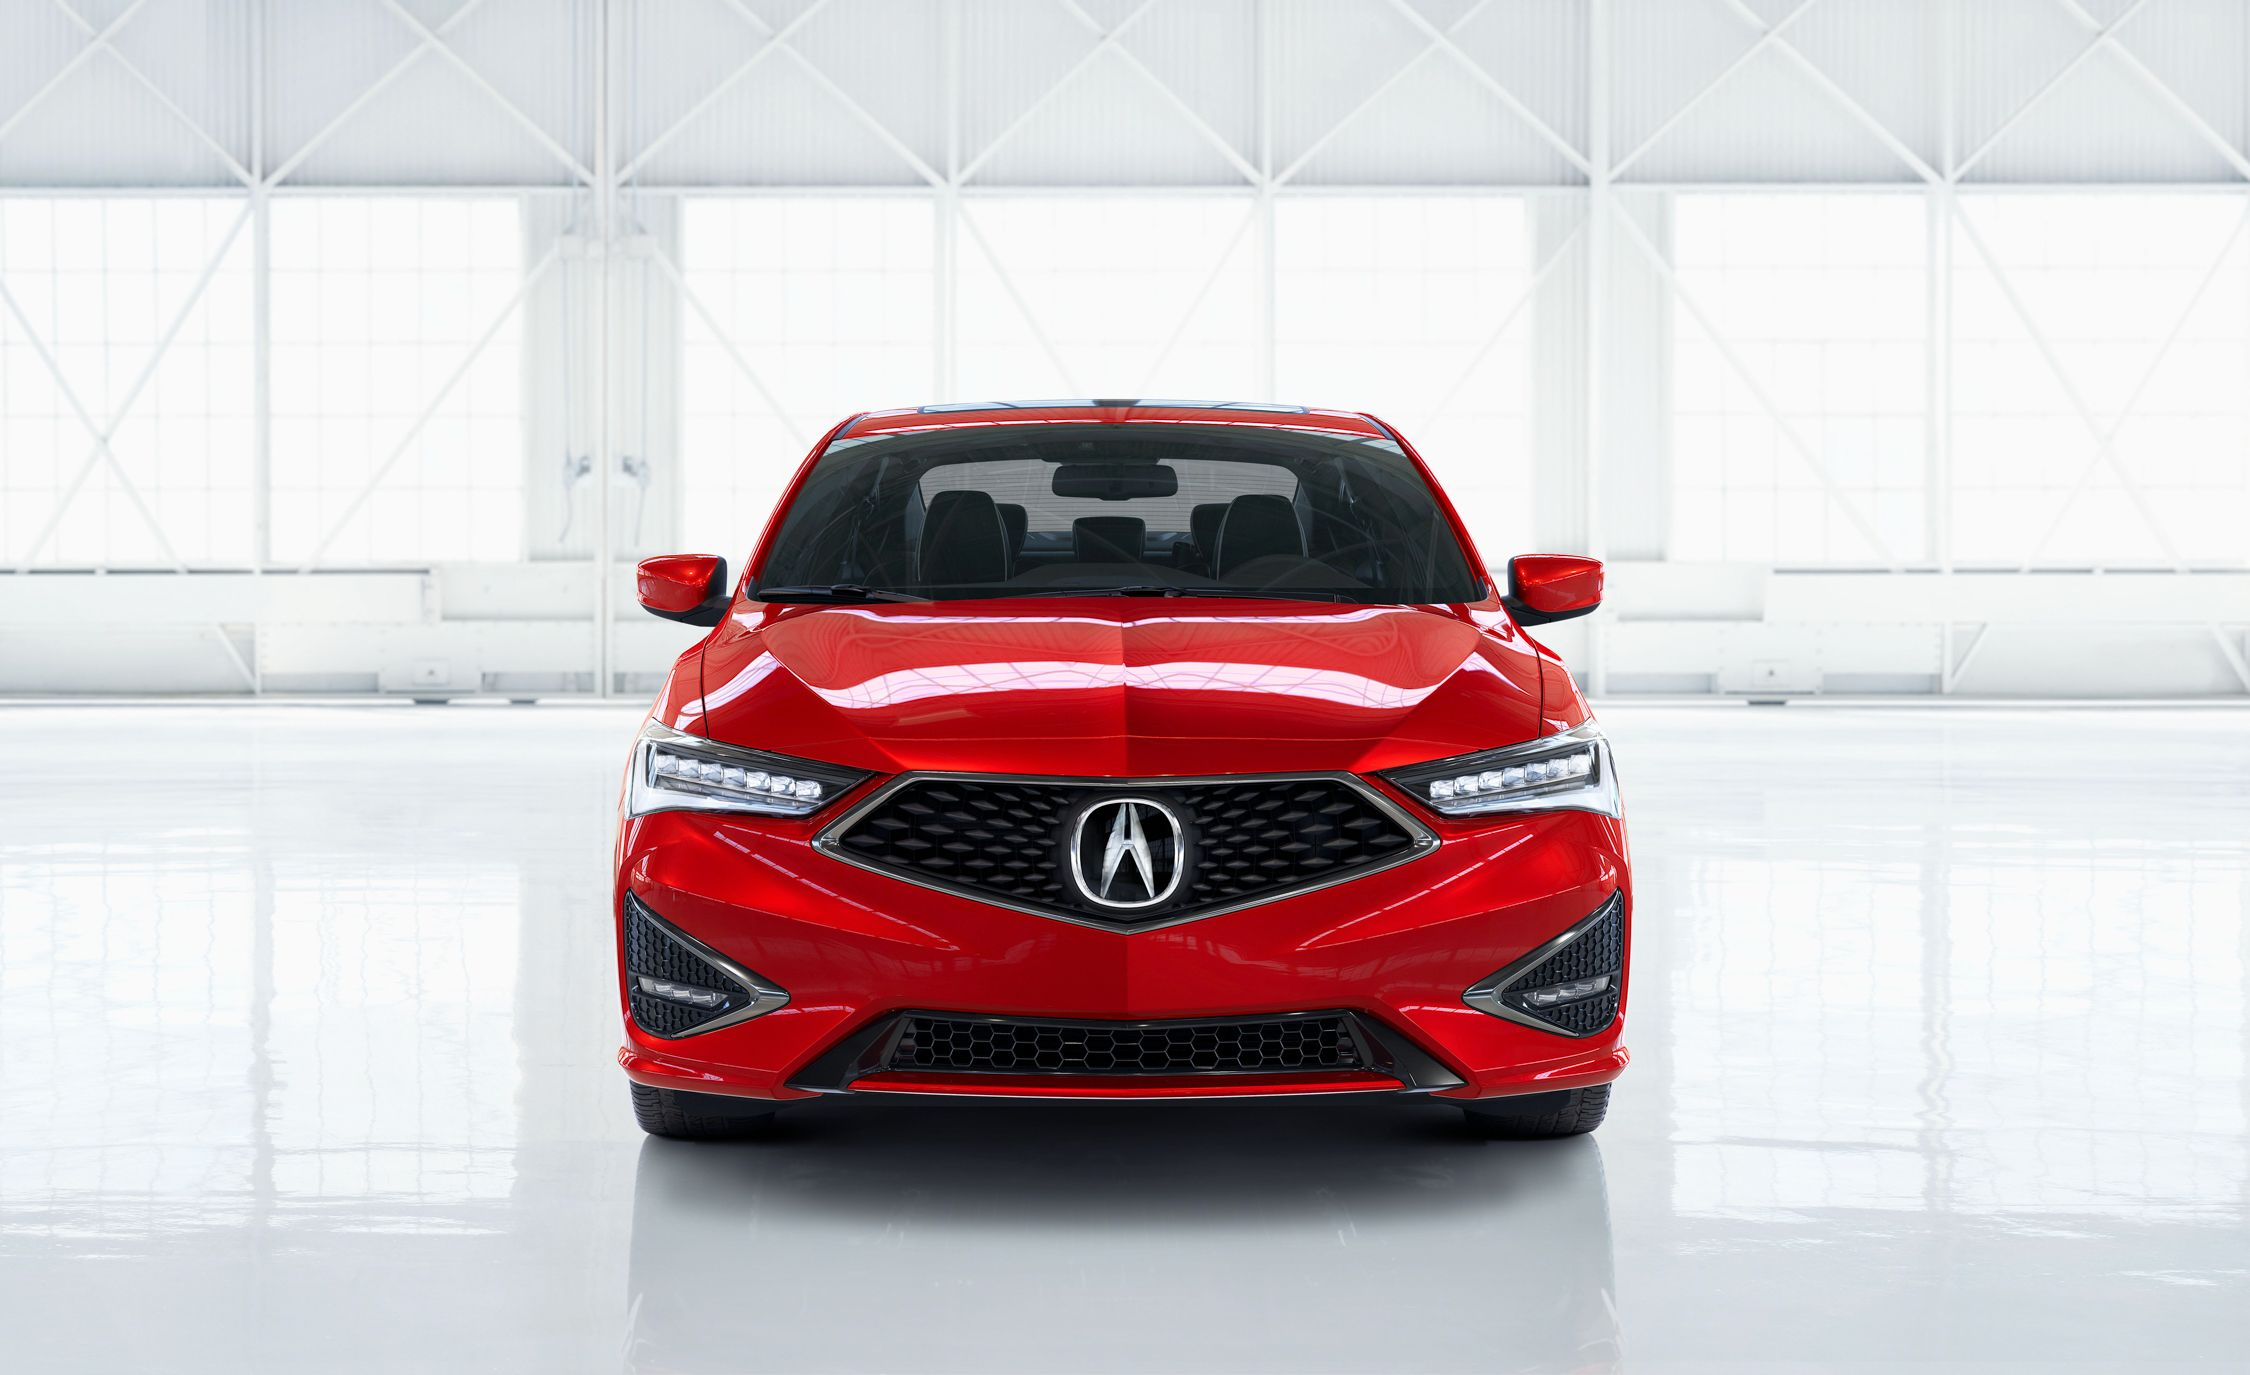 2019 Acura ILX A-spec front